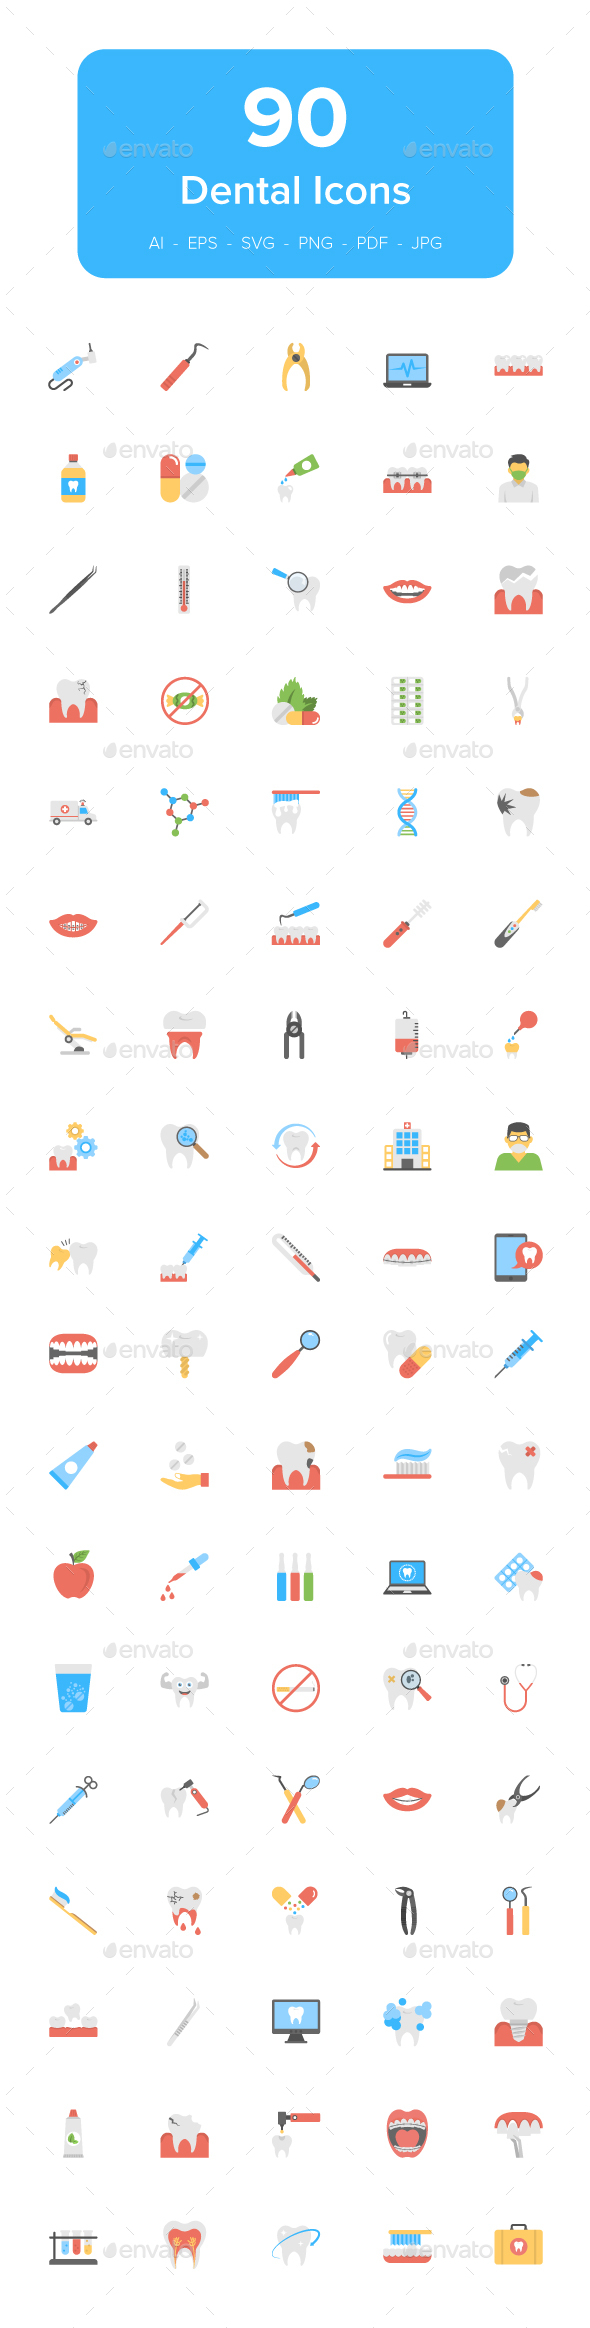 90 Dental Flat Vector Icons Set - Icons